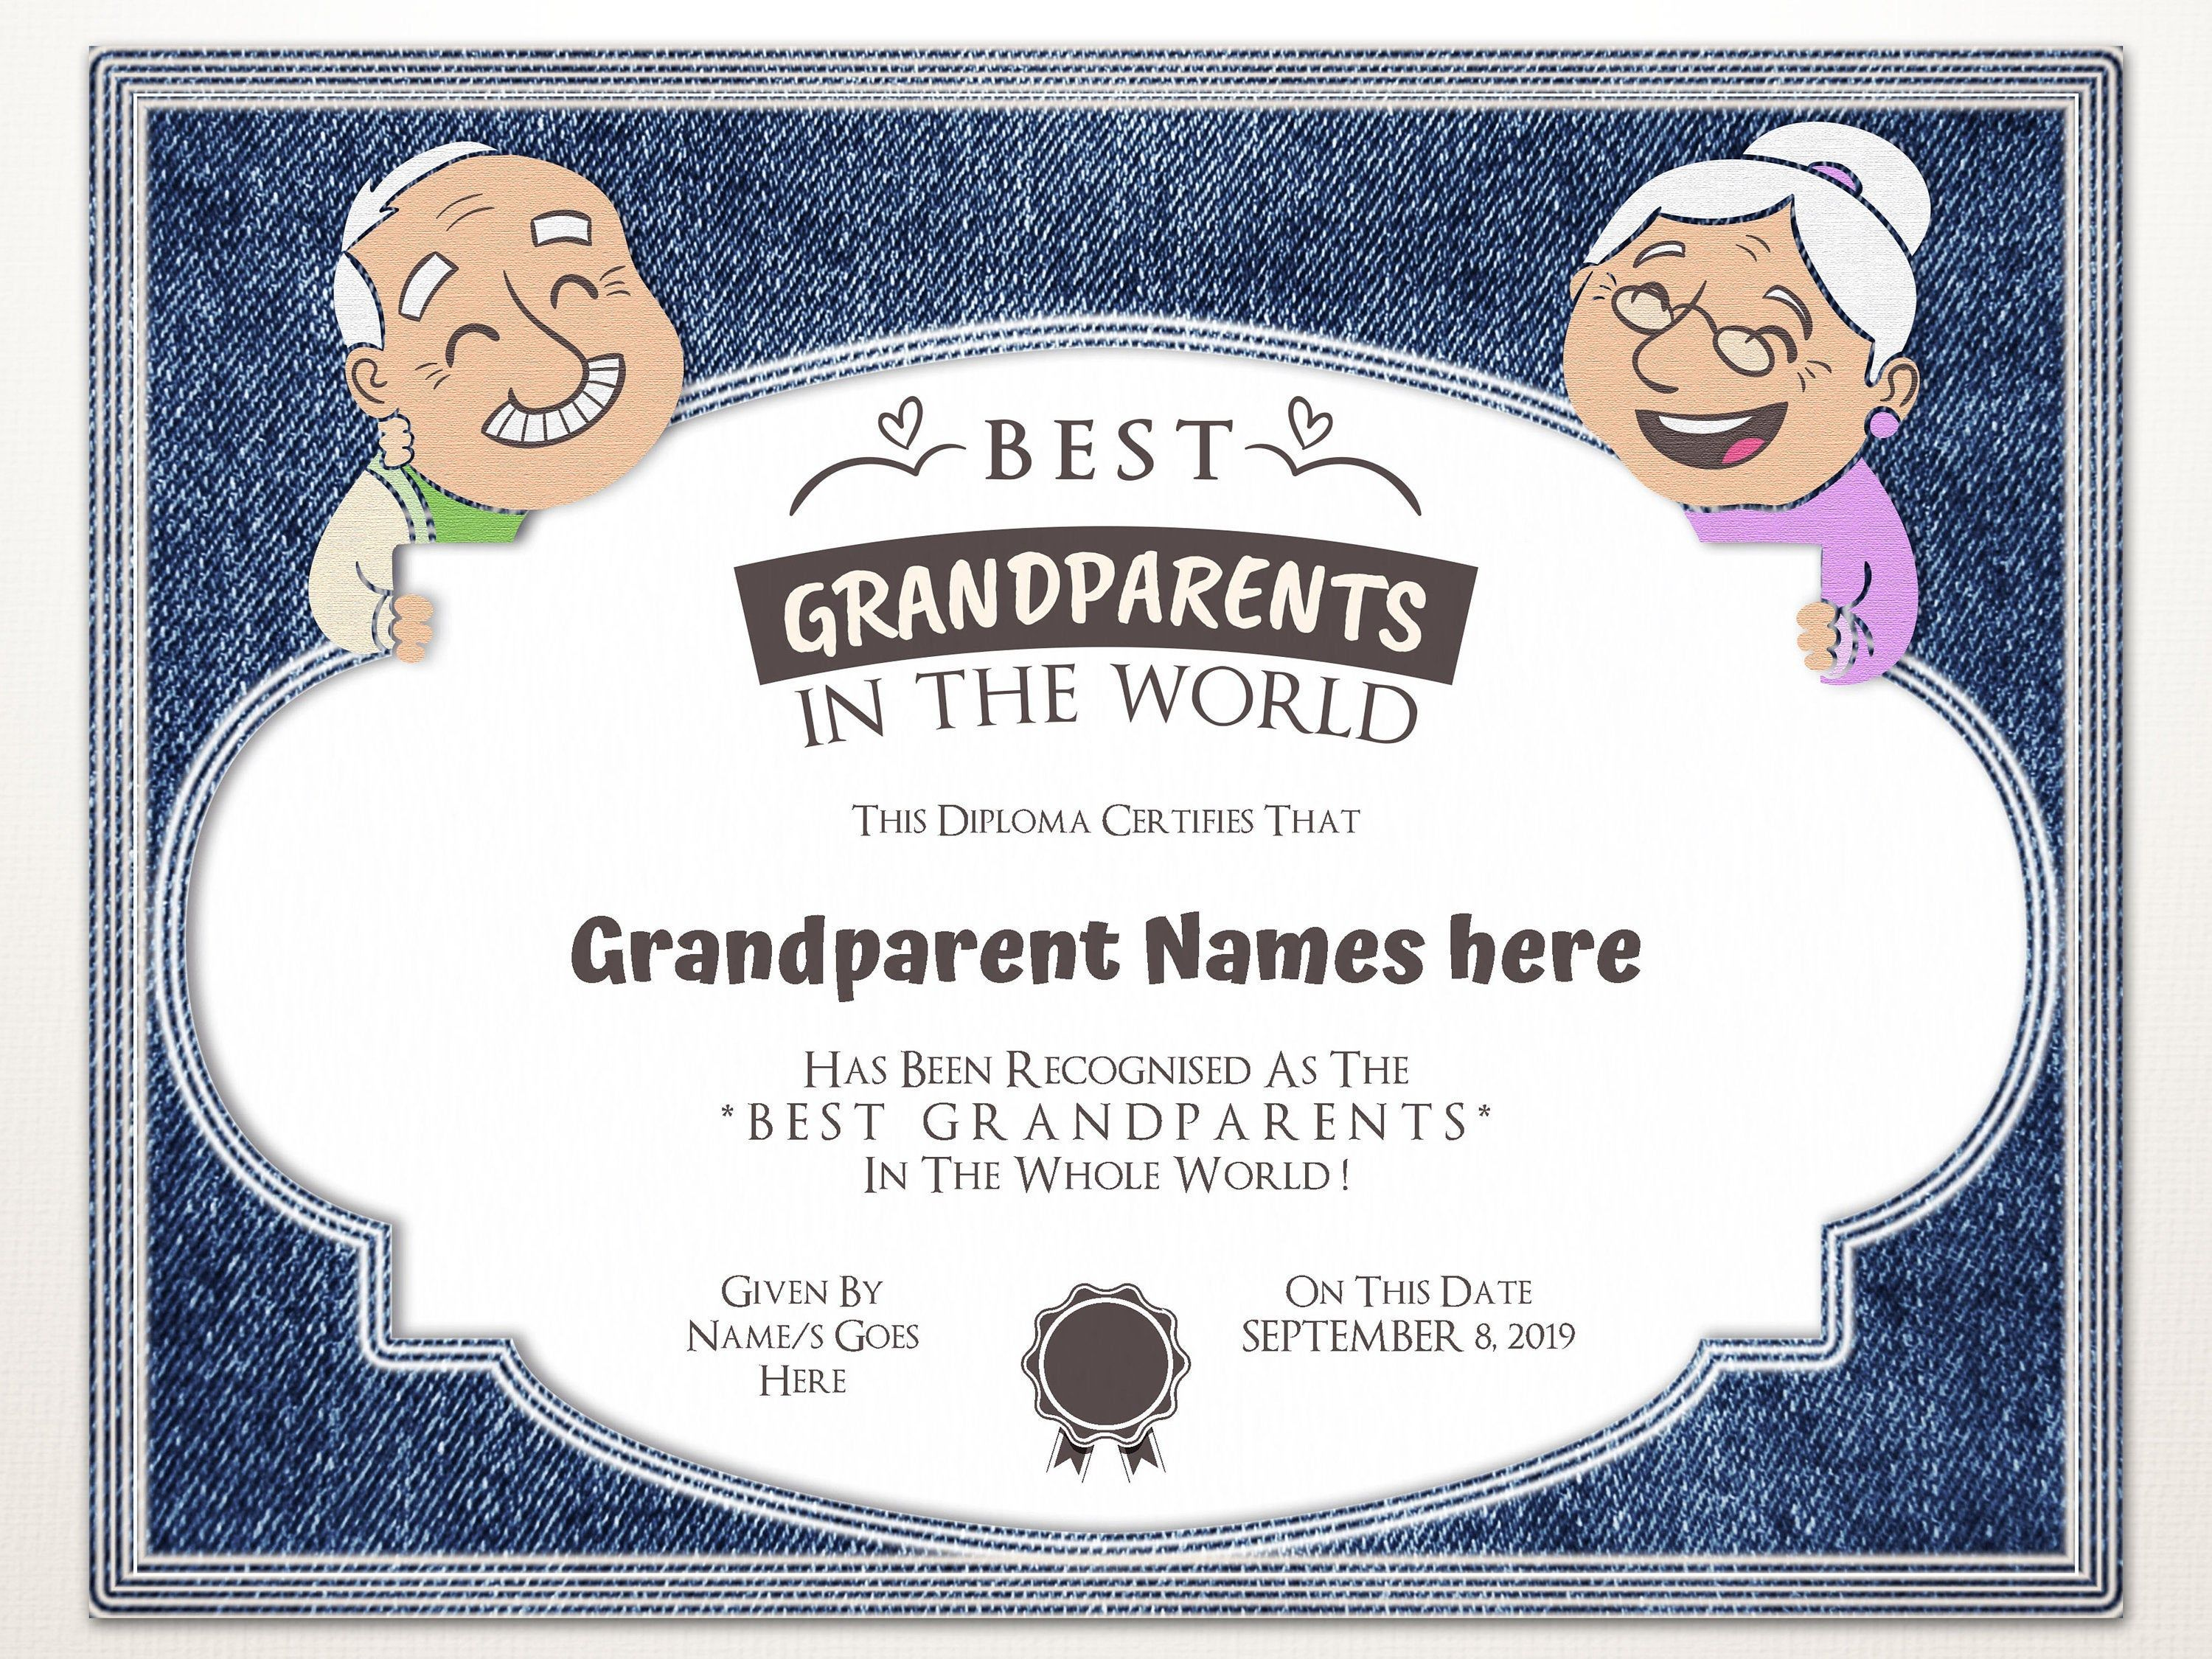 Best Grandparents In The World Gift For Grandparents Day Etsy In 2021 Editable Certificates Gifts For Grandparents Grandparents Day